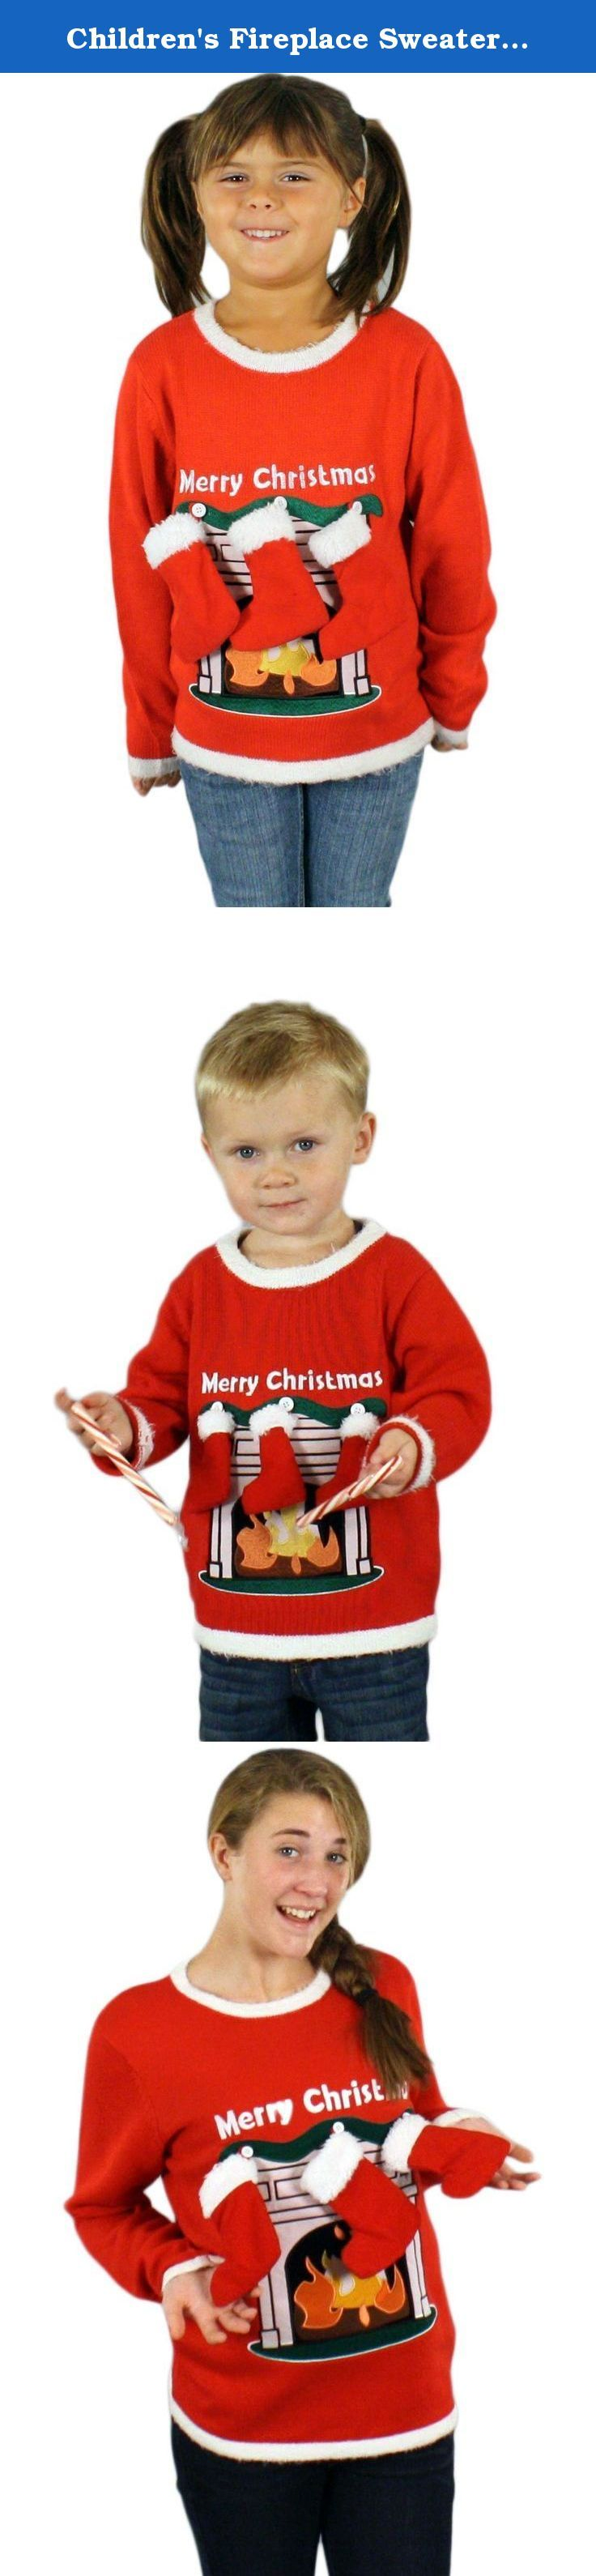 Children's Fireplace Sweater with 3-D Stockings in Red - Ugly Christmas Sweater ((4-7) Medium) By Festified. Similar to our lighted adult sweaters, this non-lighted version for kids is just as festive and merry! Real stockings are attached to the sweater by buttons and can be removed if necessary. This ugly sweater for kids is available in a wide range of sizes and its high-quality construction and materials mean it will look great and feel comfortable all season long. There are also…